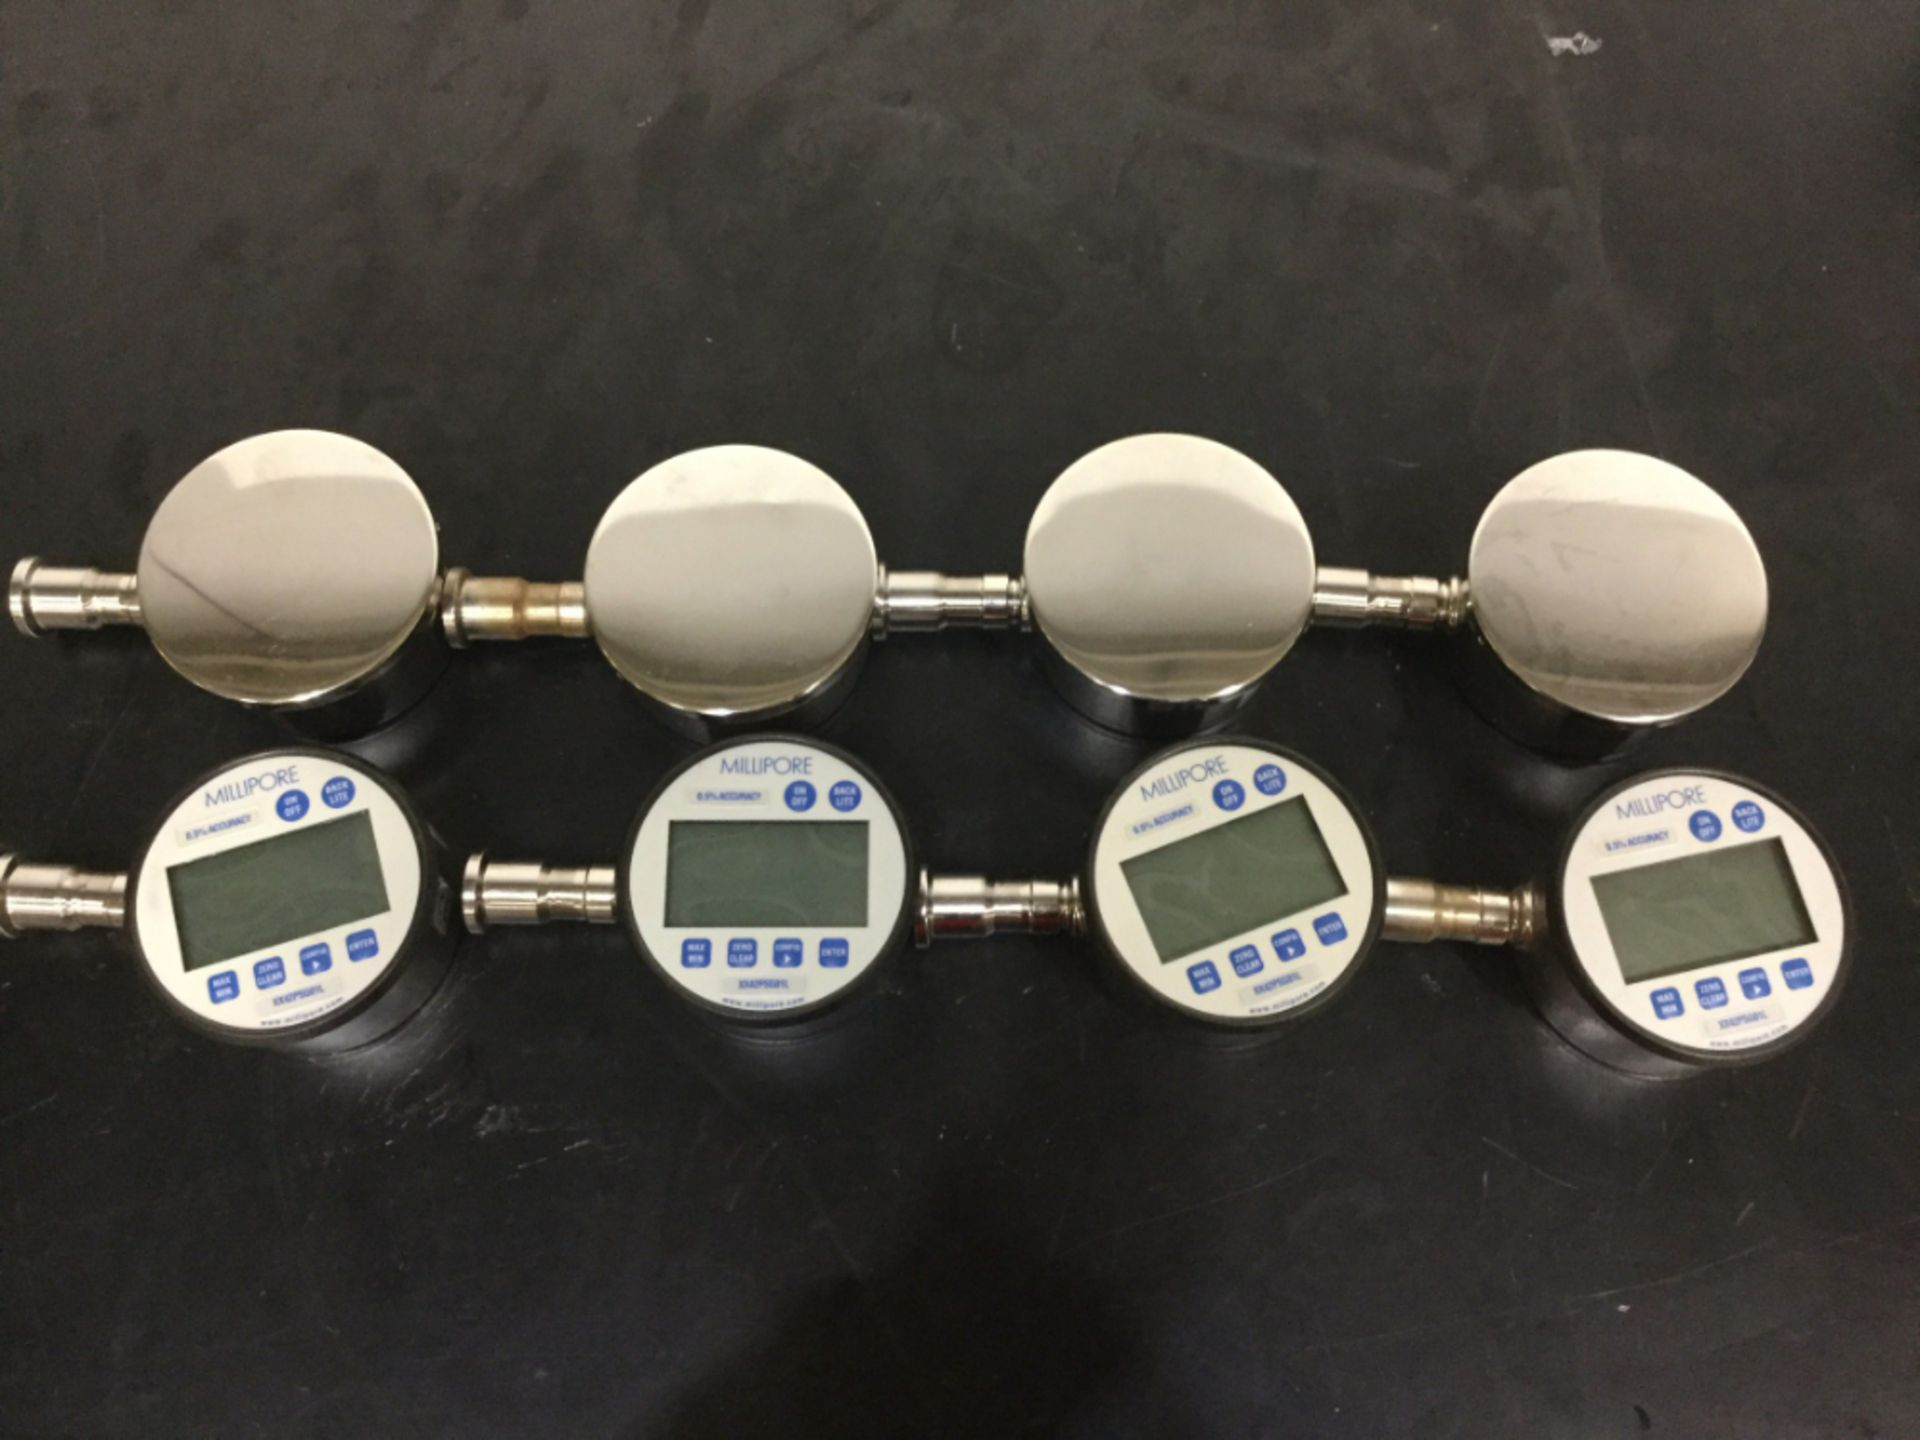 Lot 4 - Lot of (8) Millipore Sanitary Digital Pressure Gauges